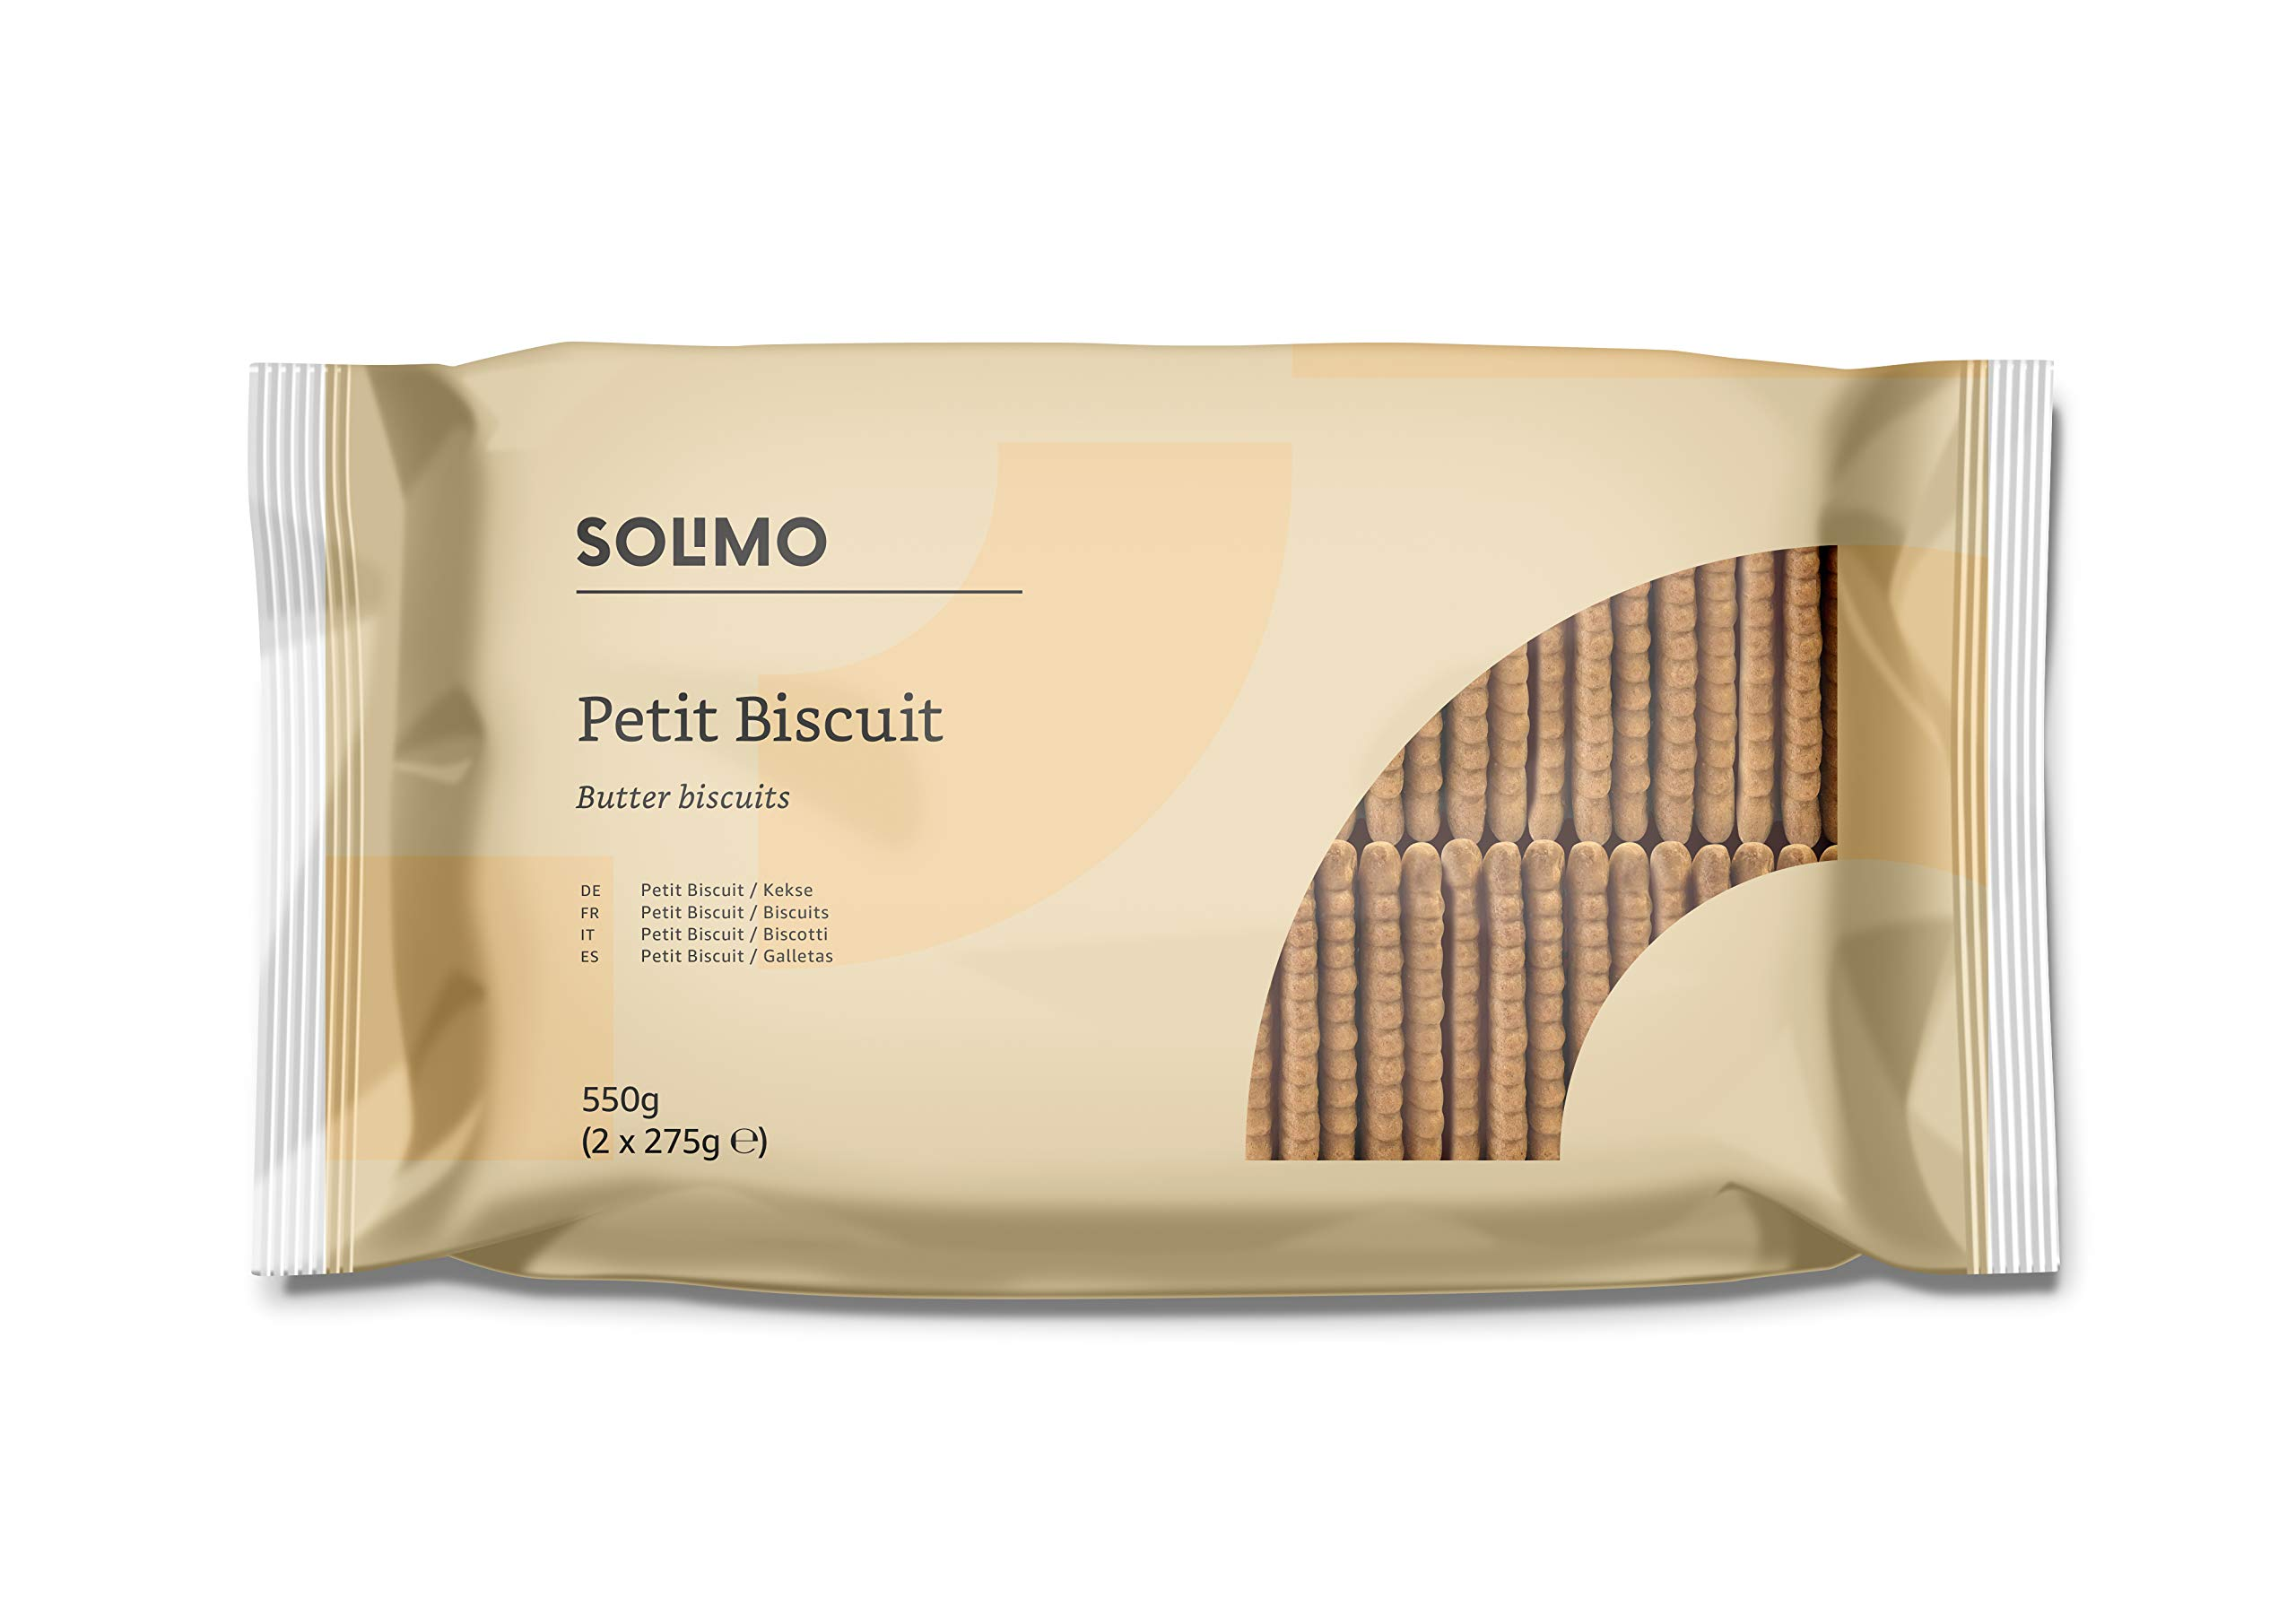 Amazon Brand - Solimo - Petit Biscuits - 3 packs (550g each)